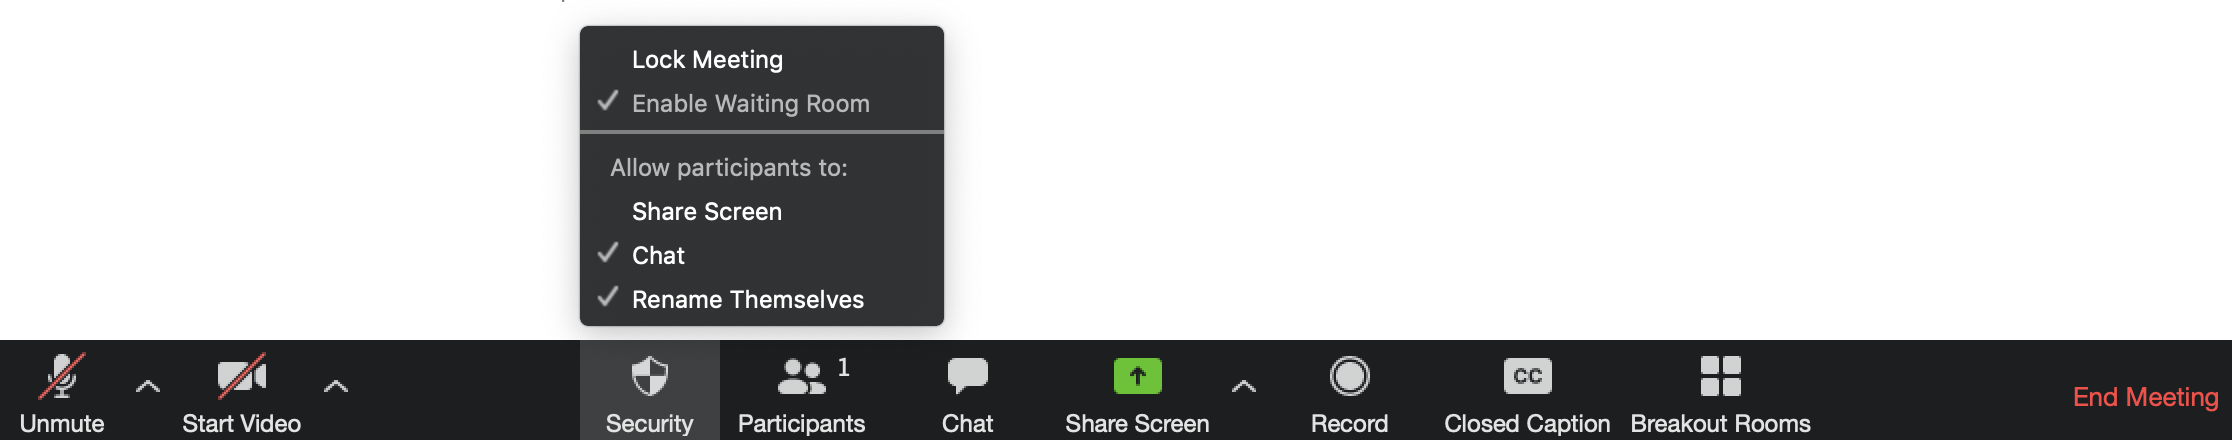 Zoom security toolbar displaying options to 'Lock Meeting' and allow participants to 'Share Screen', 'Chat', and 'Rename Themselves'